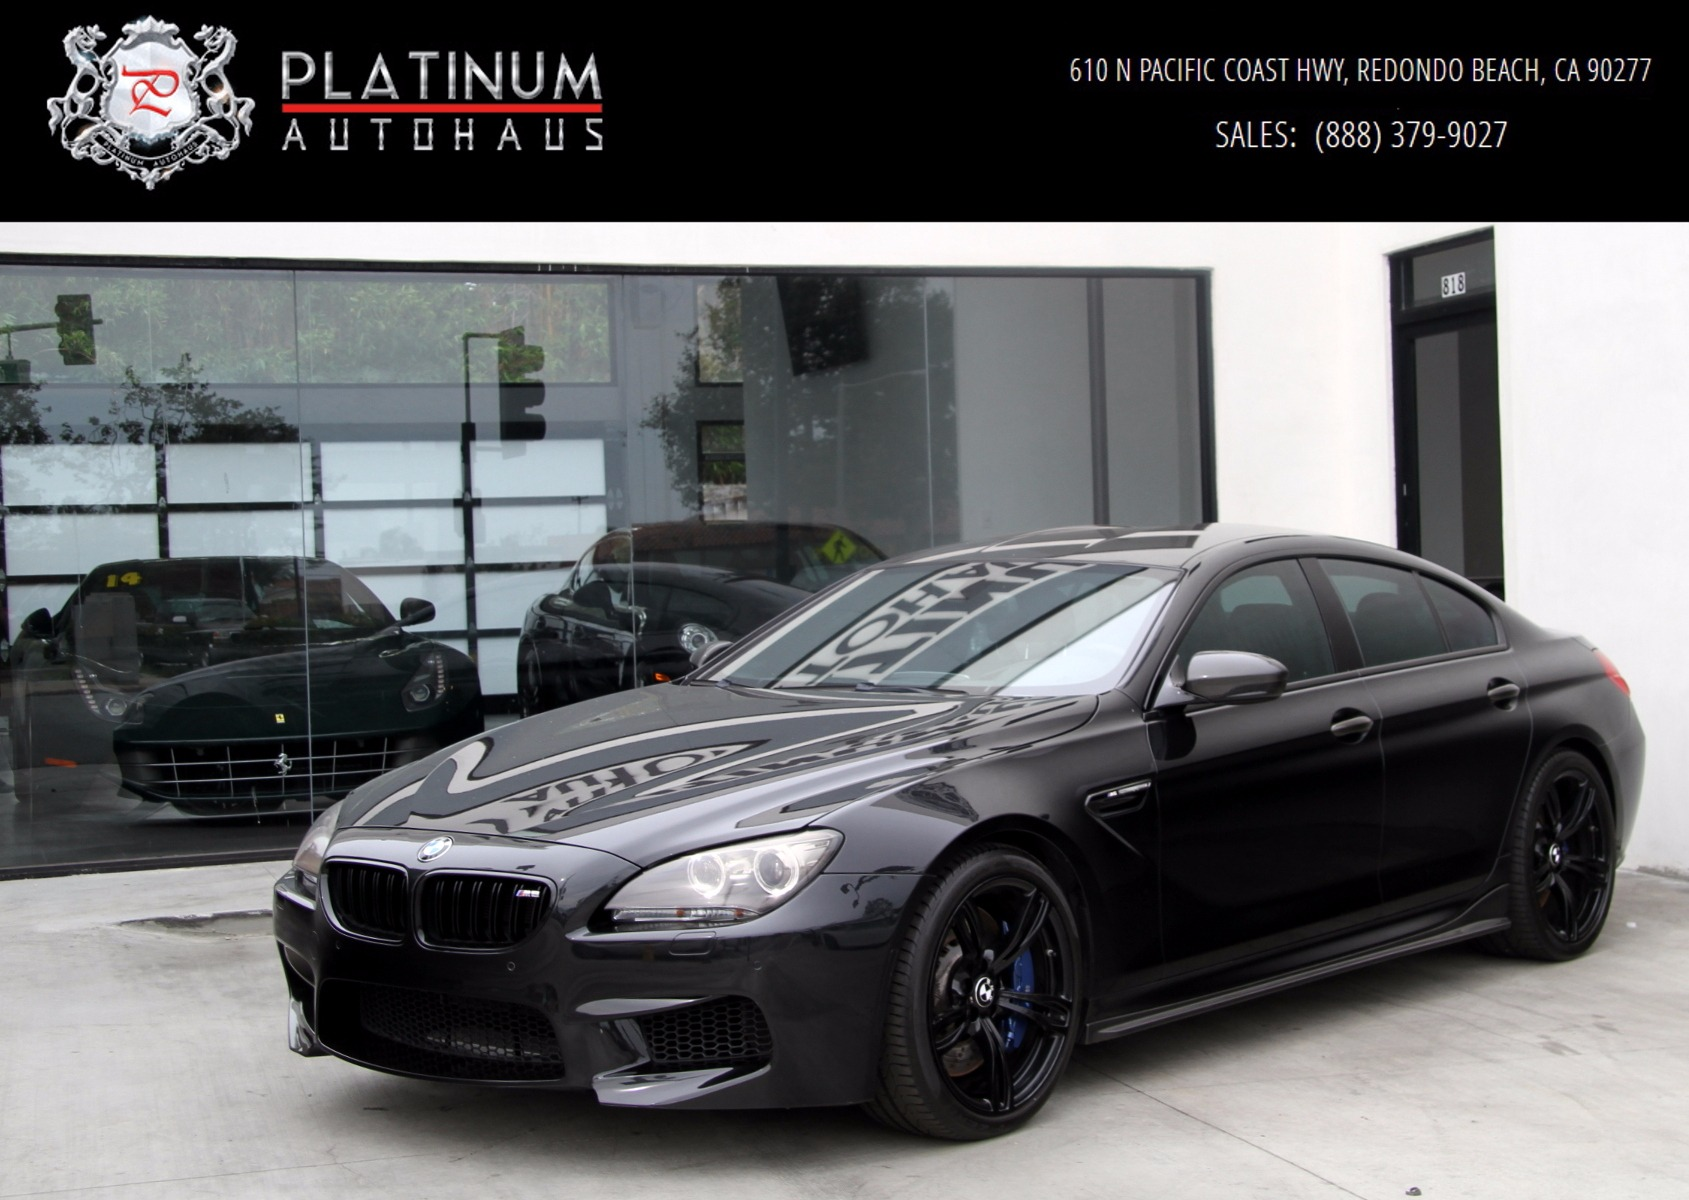 Bmw Dealership Near Me >> 2014 BMW M6 Gran Coupe Stock # 5581 for sale near Redondo Beach, CA | CA BMW Dealer